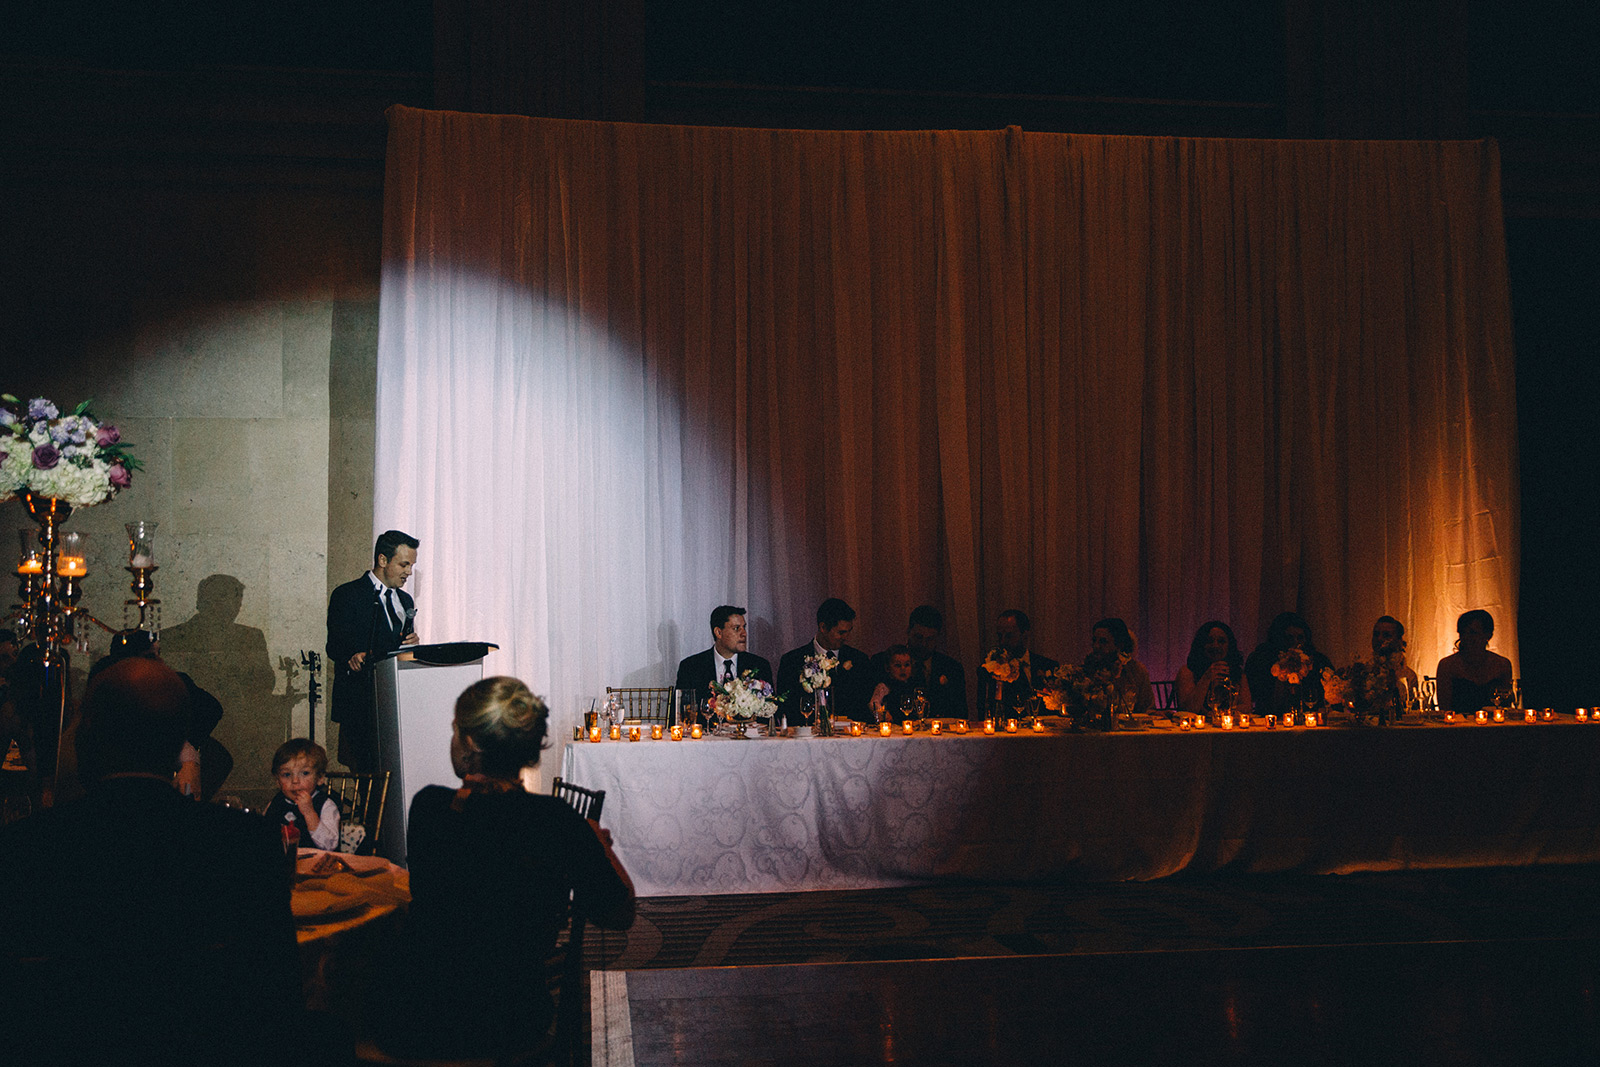 One-King-West-Toronto-wedding-photography_Sam-Wong-of-Visual-Cravings_KnR-35